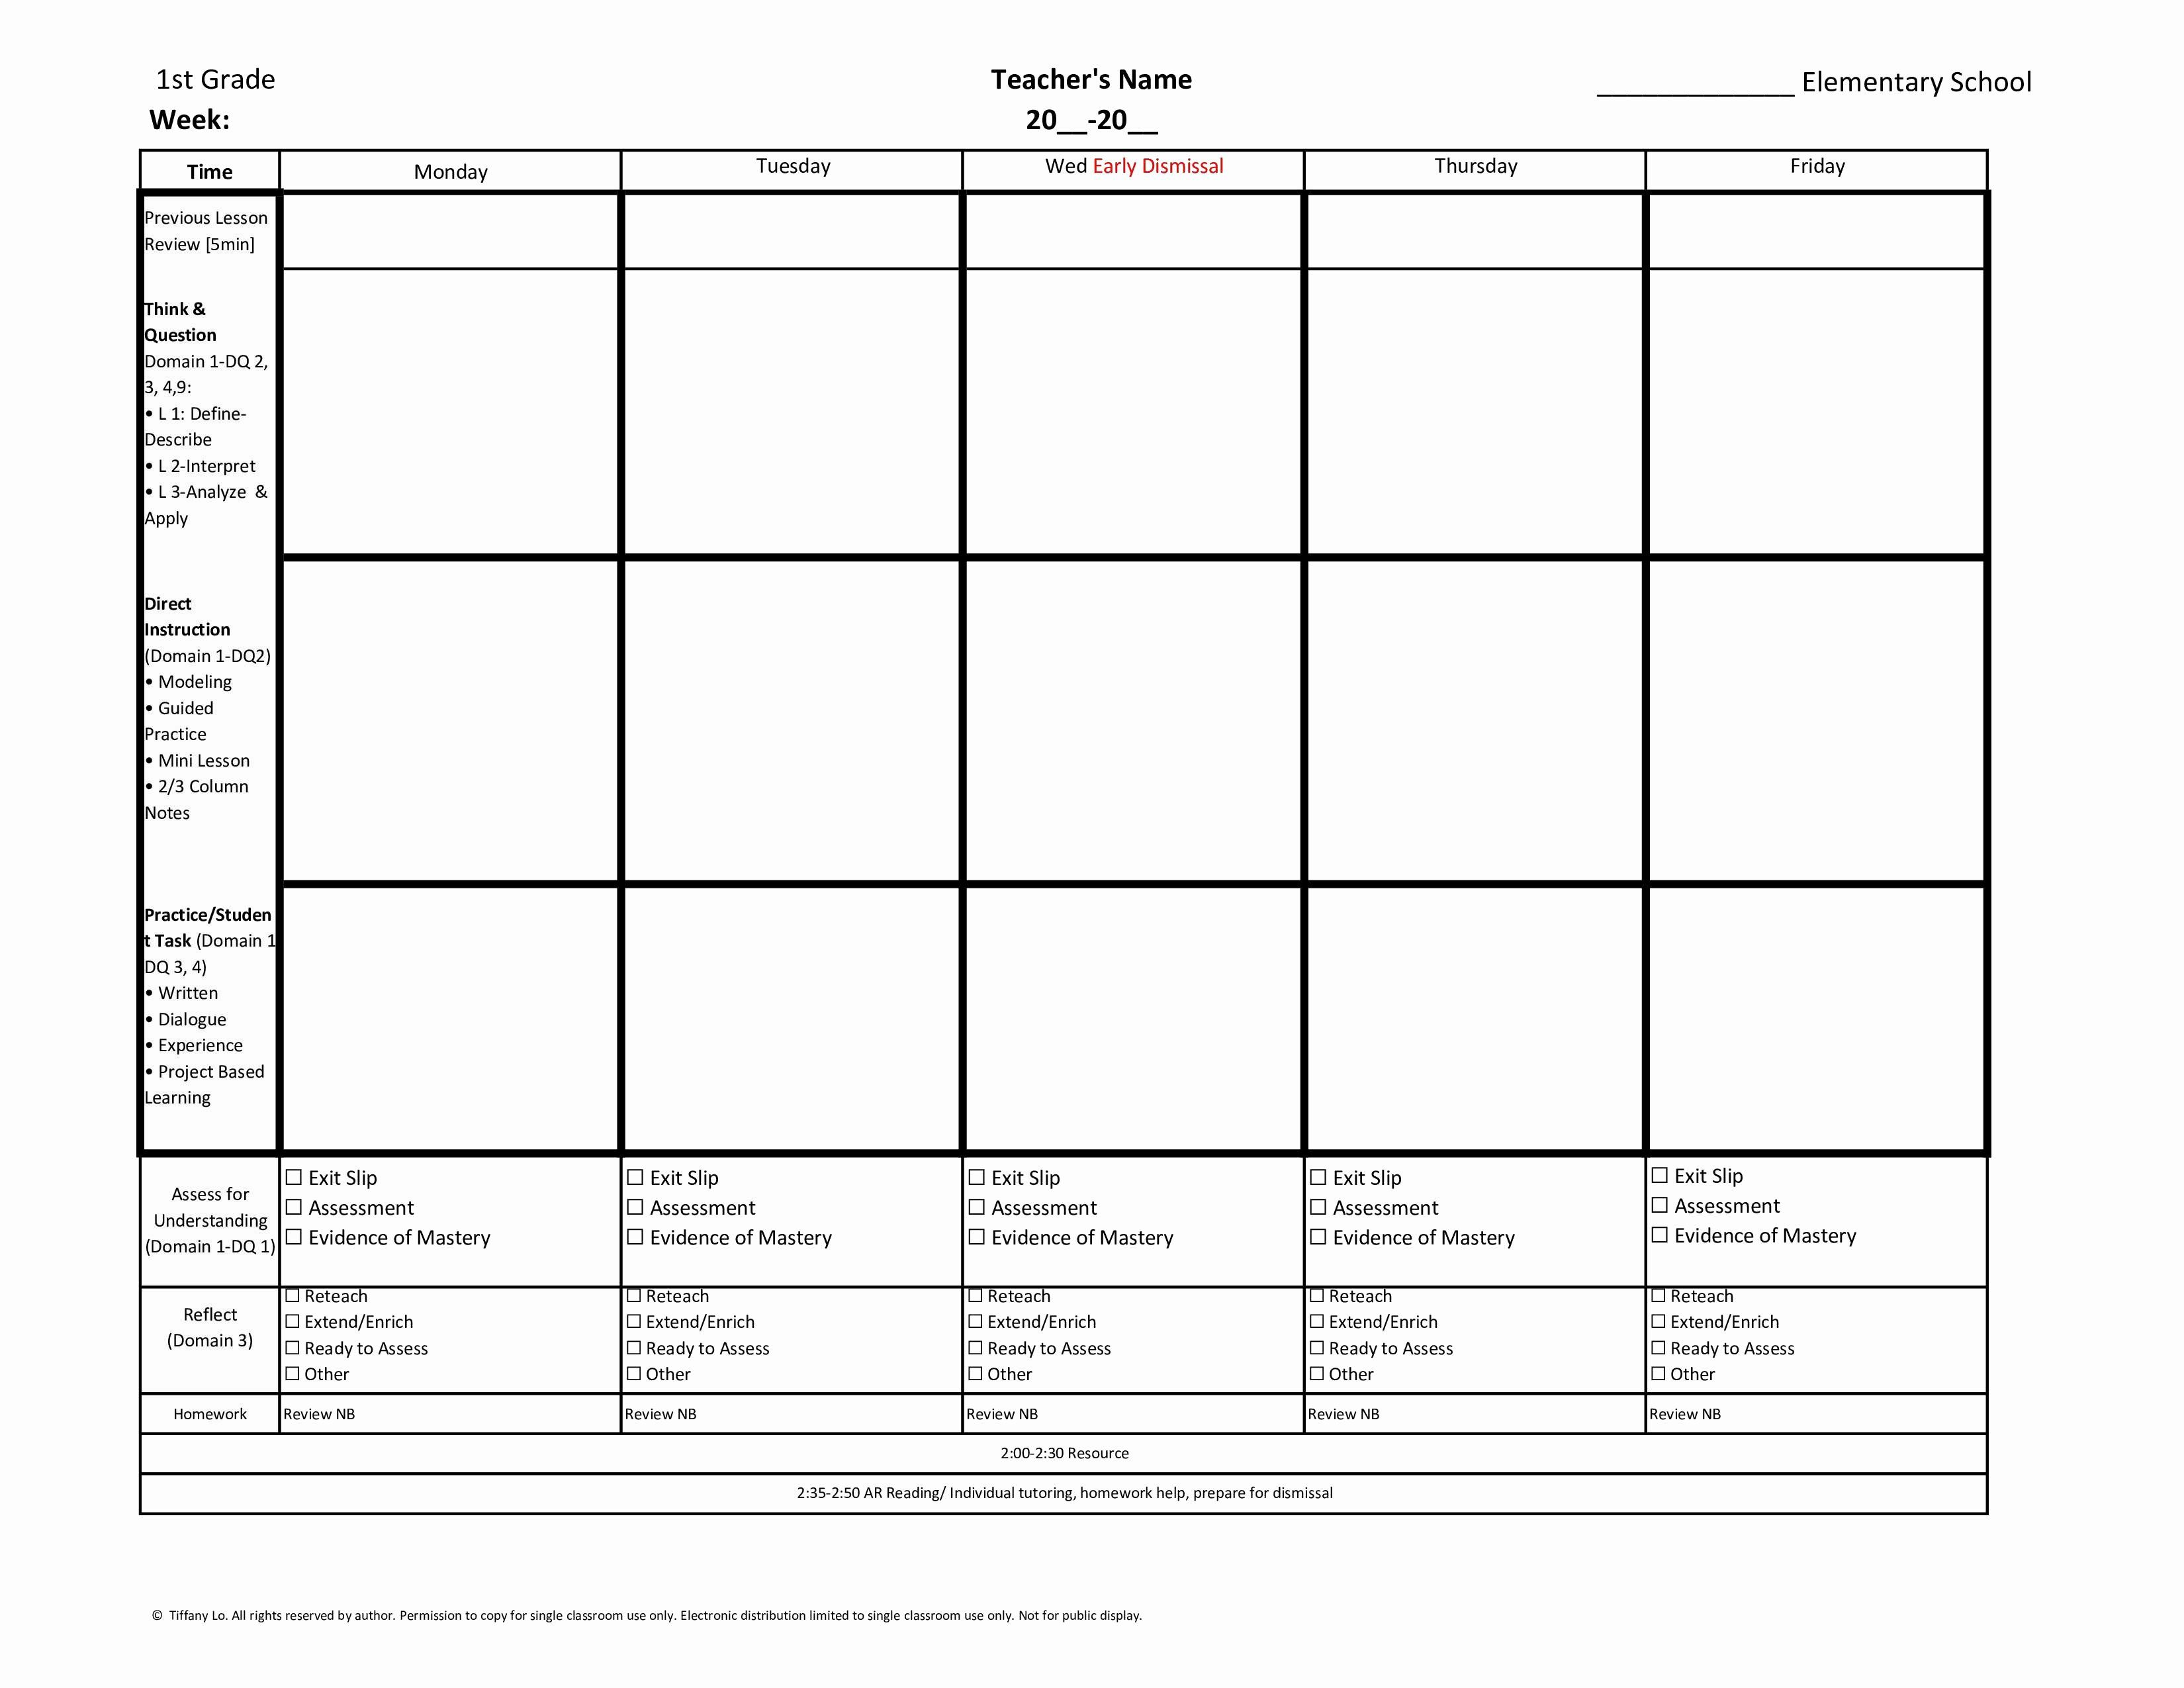 Lesson Plan Weekly Template Inspirational 1st First Grade Mon Core Weekly Lesson Plan Temp Weekly Lesson Plan Template Printable Lesson Plans Math Lesson Plans Weekly lesson plan template elementary